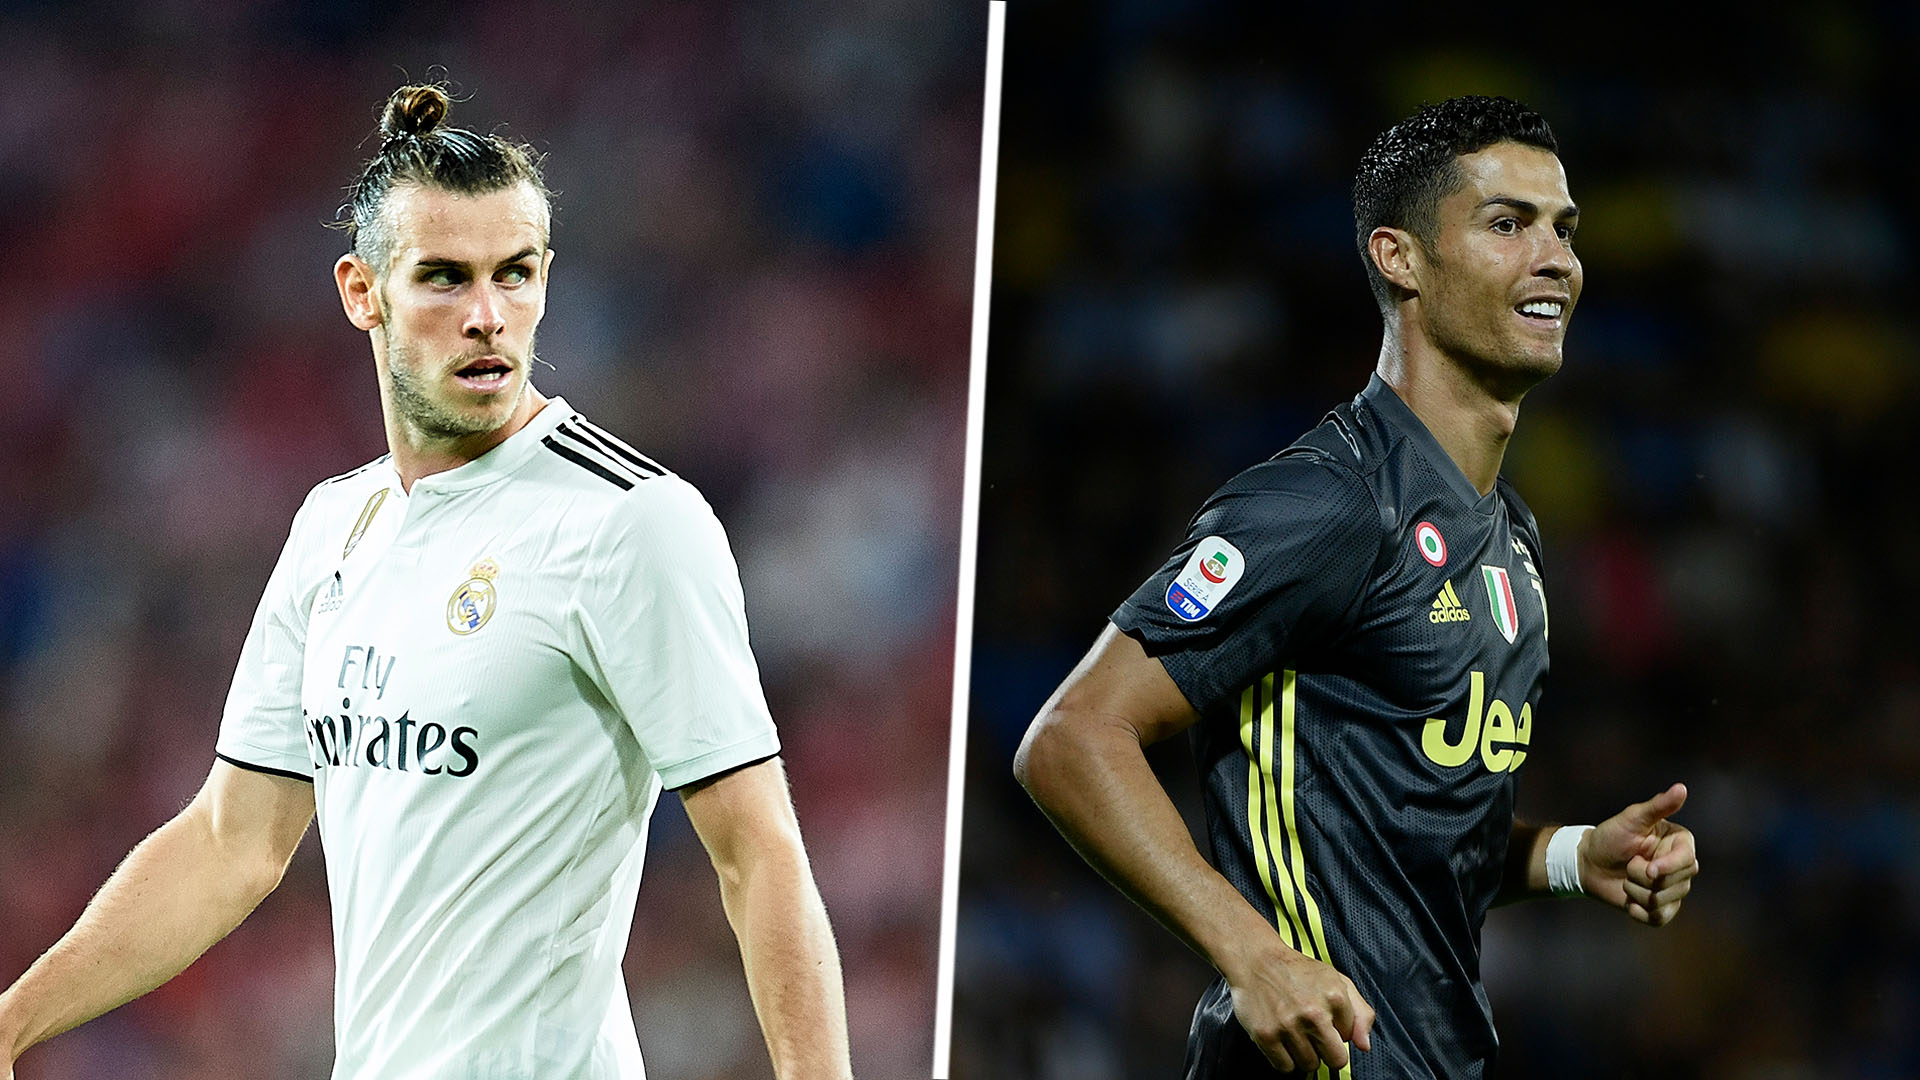 Zidane wanted to keep Ronaldo and sell Bale - Ex-Real Madrid president